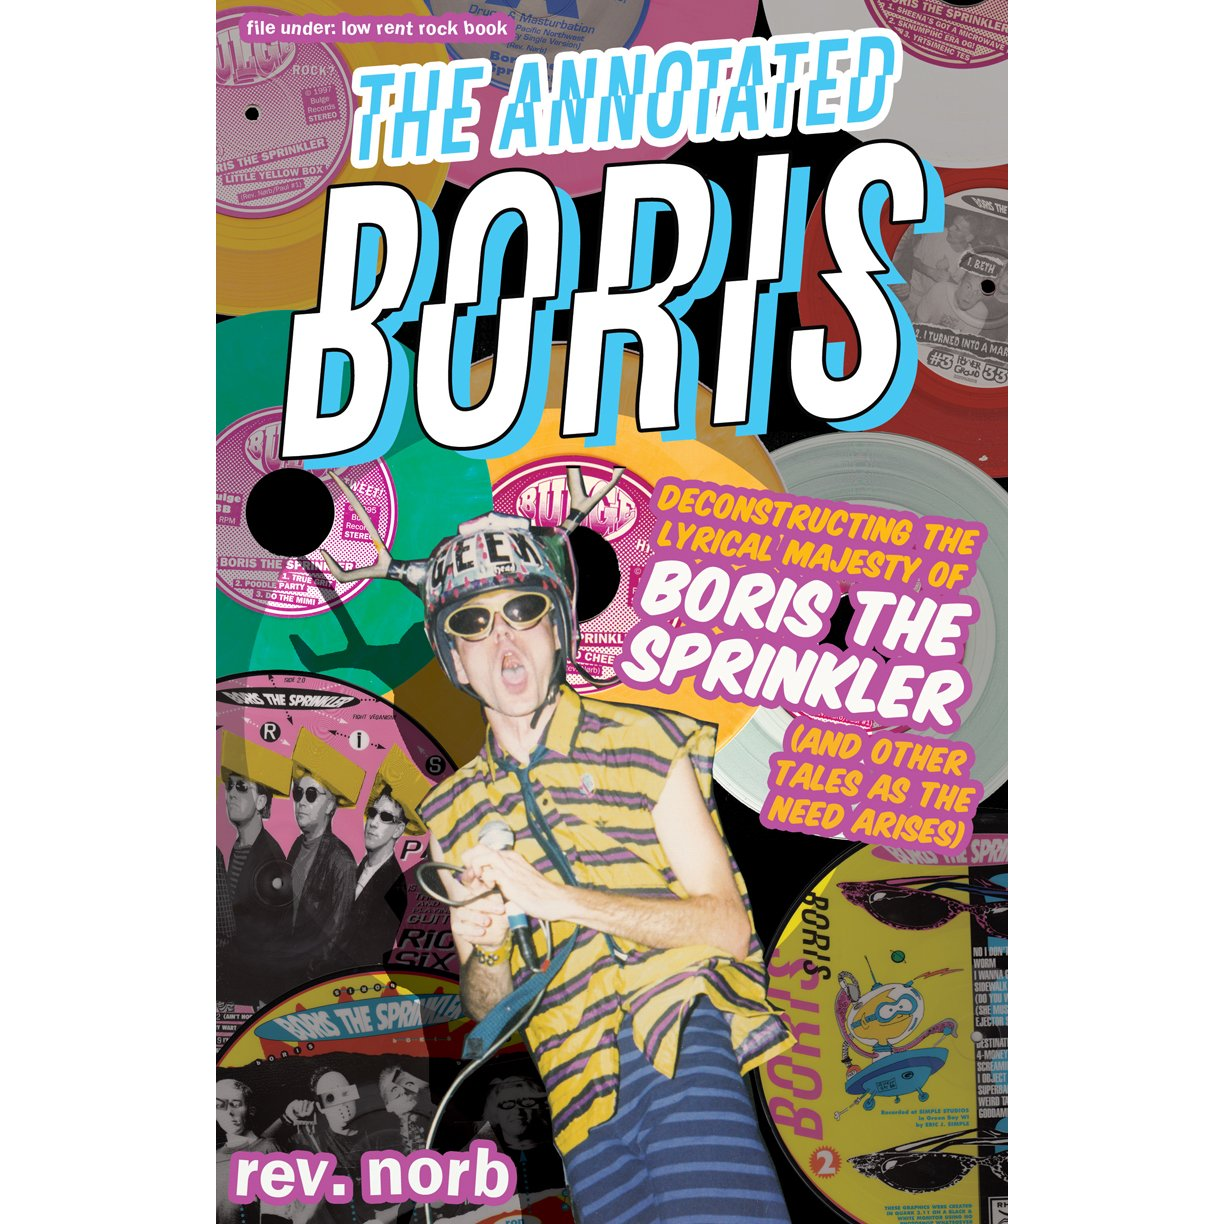 Download The Annotated Boris: Deconstructing the Lyrical Majesty of Boris the Sprinkler ((And Other Tales As the Need Arises)) pdf epub